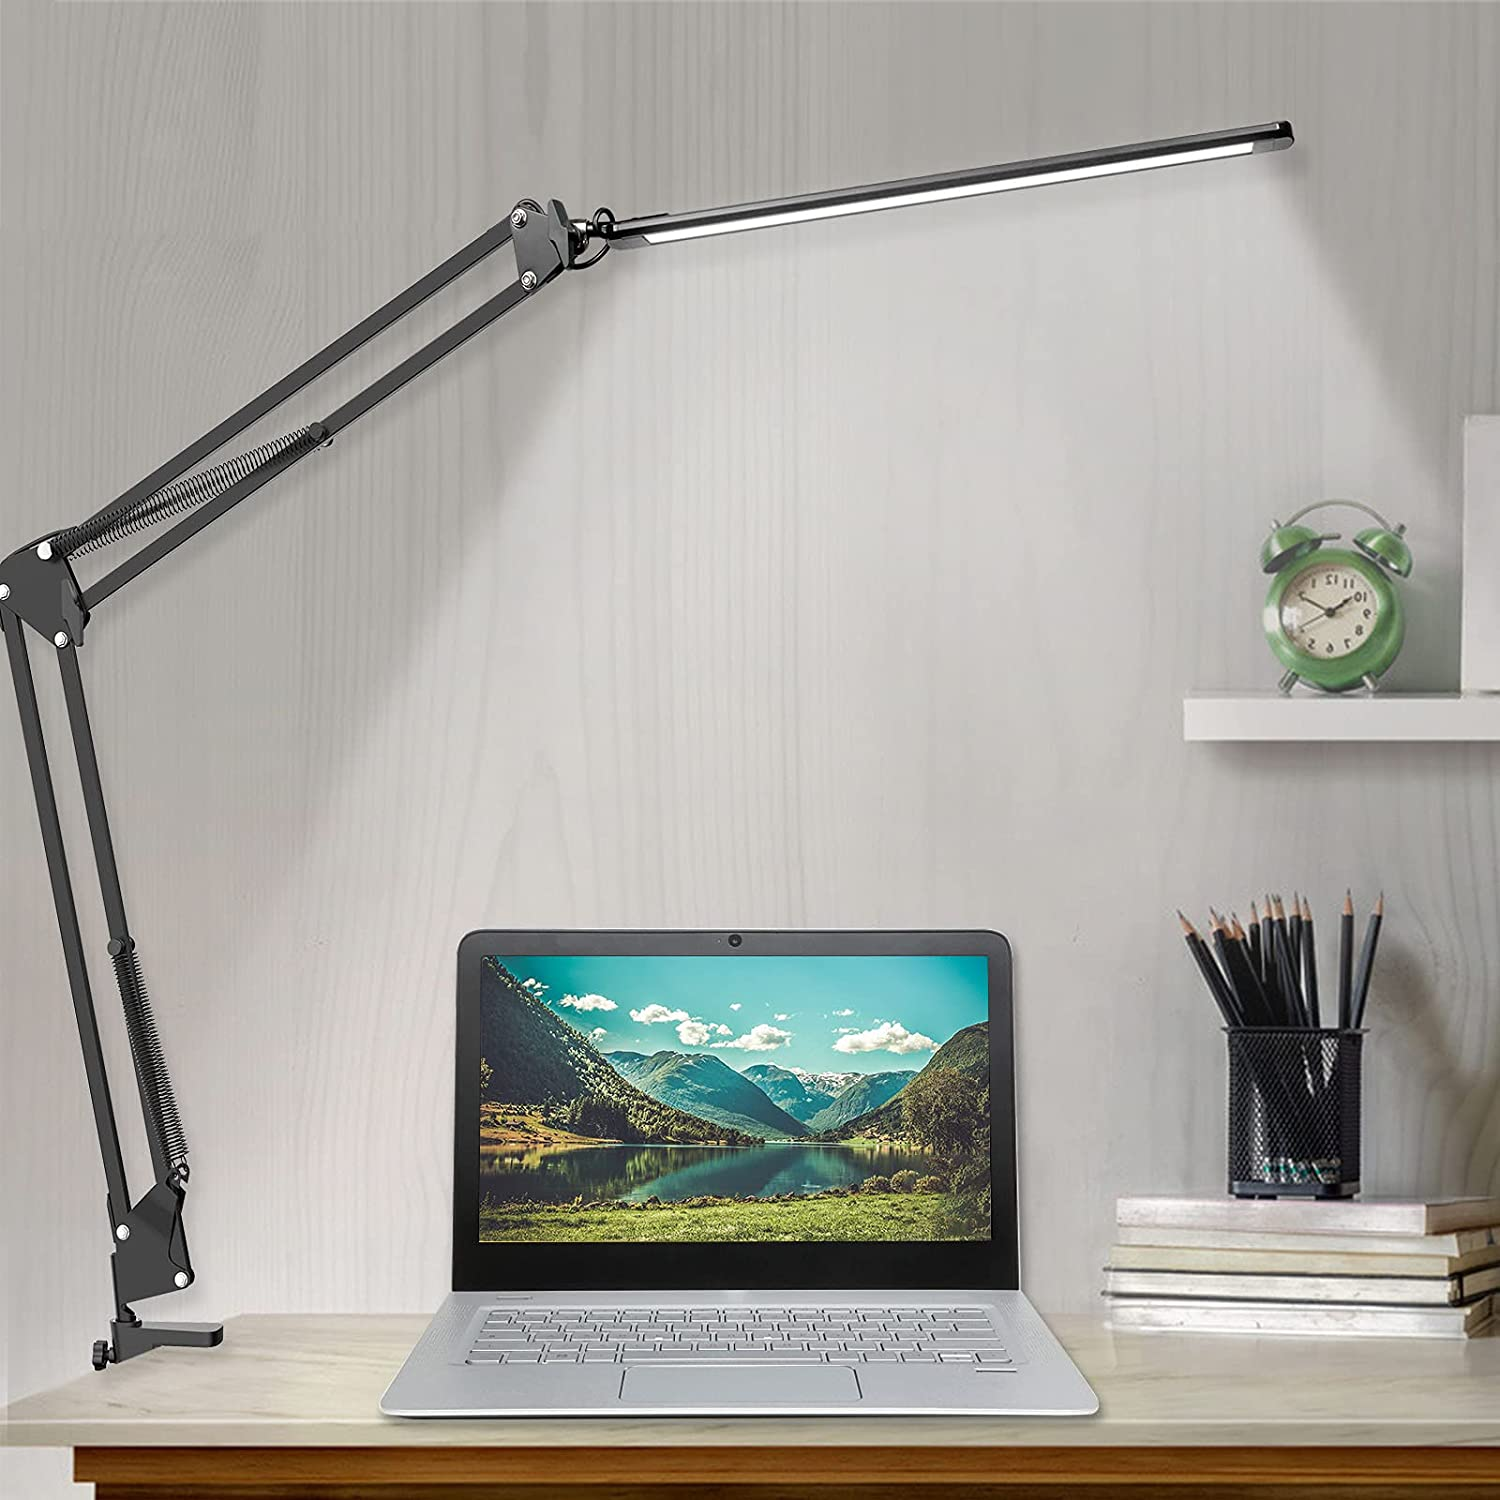 LED Desk Lamp, Adjustable Swing Arm Desk Lamp with Clamp, Dimmable Desk Light Eye-Care Table Light, Memory Function, 3 Color Modes, 10-Level Brightness Table Lamp for Home, Office, Study, Reading